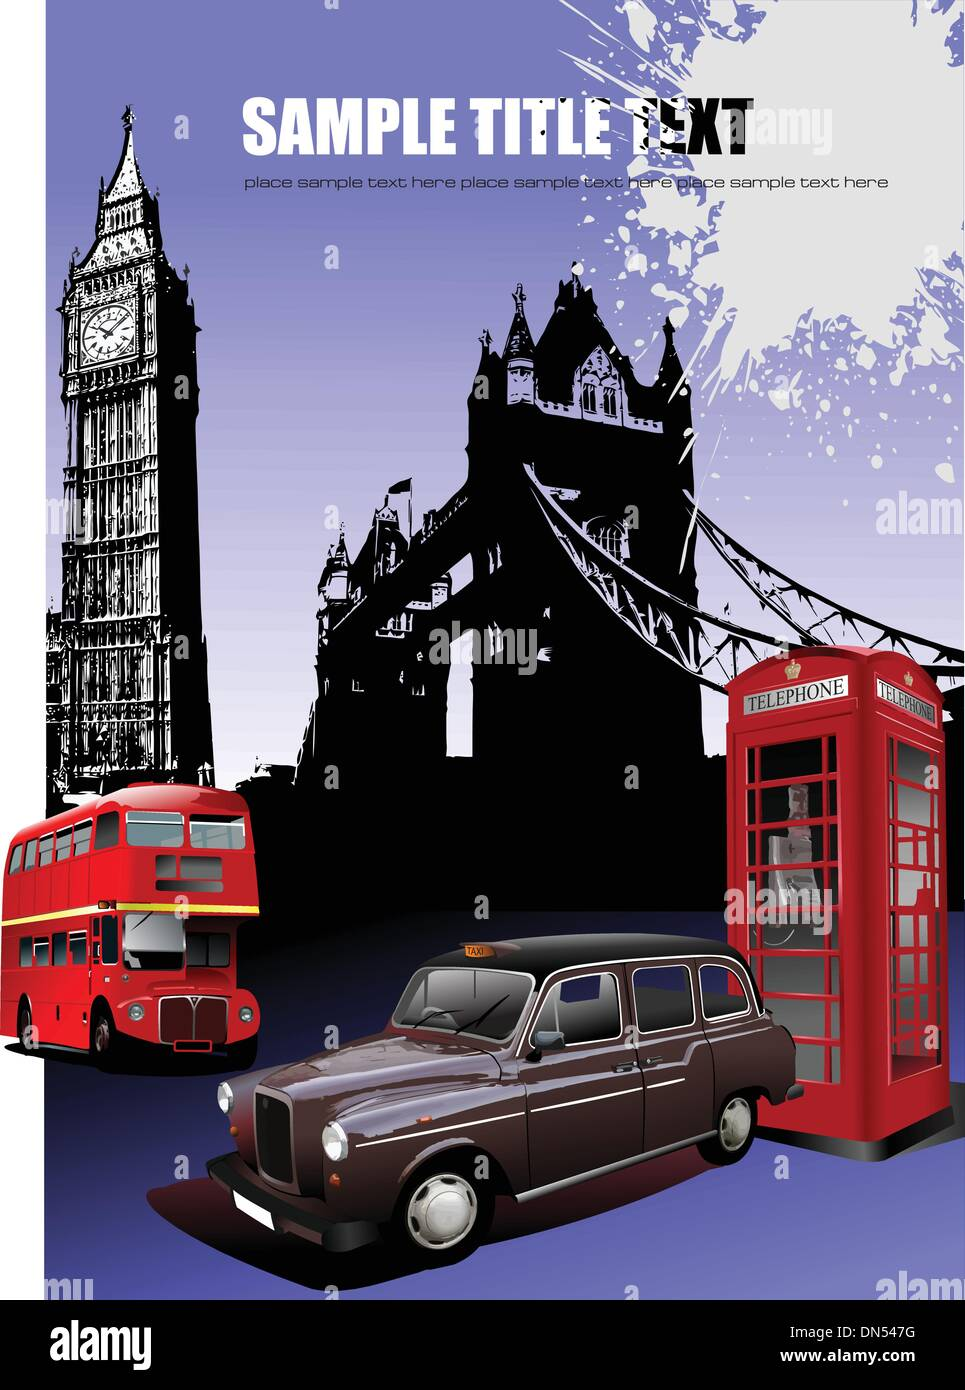 London images background. Vector illustration Stock Vector